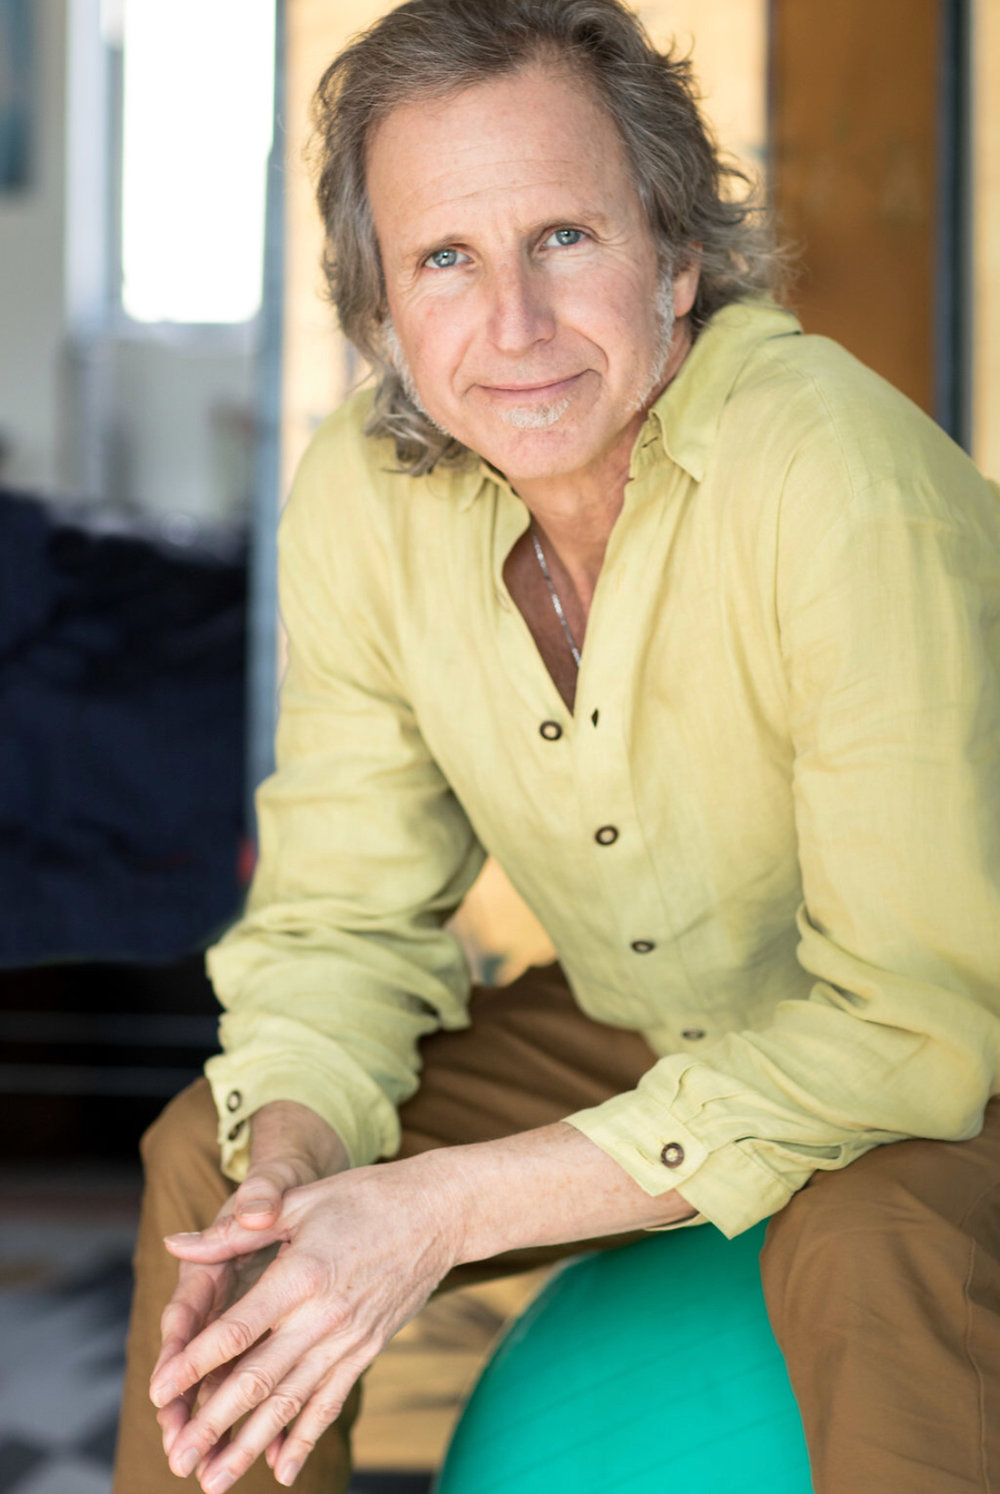 Michael Gelbart, LCSW - San Francisco Bay Area Couples Therapist, Men's Psychotherapist & Intimacy Counselor